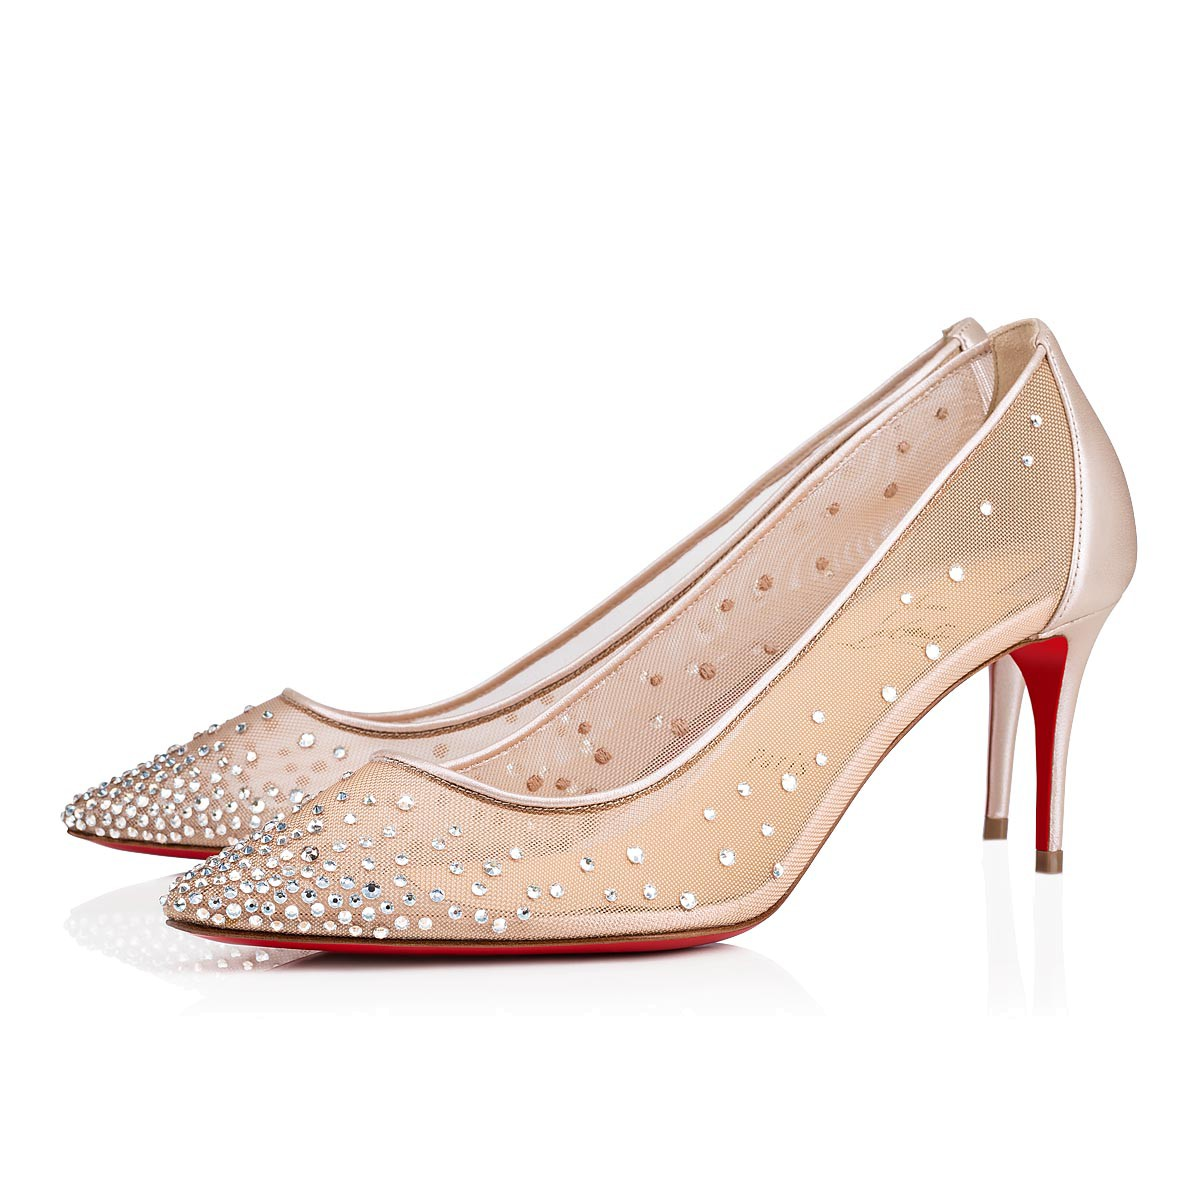 Souliers - Follies Strass 070 - Christian Louboutin